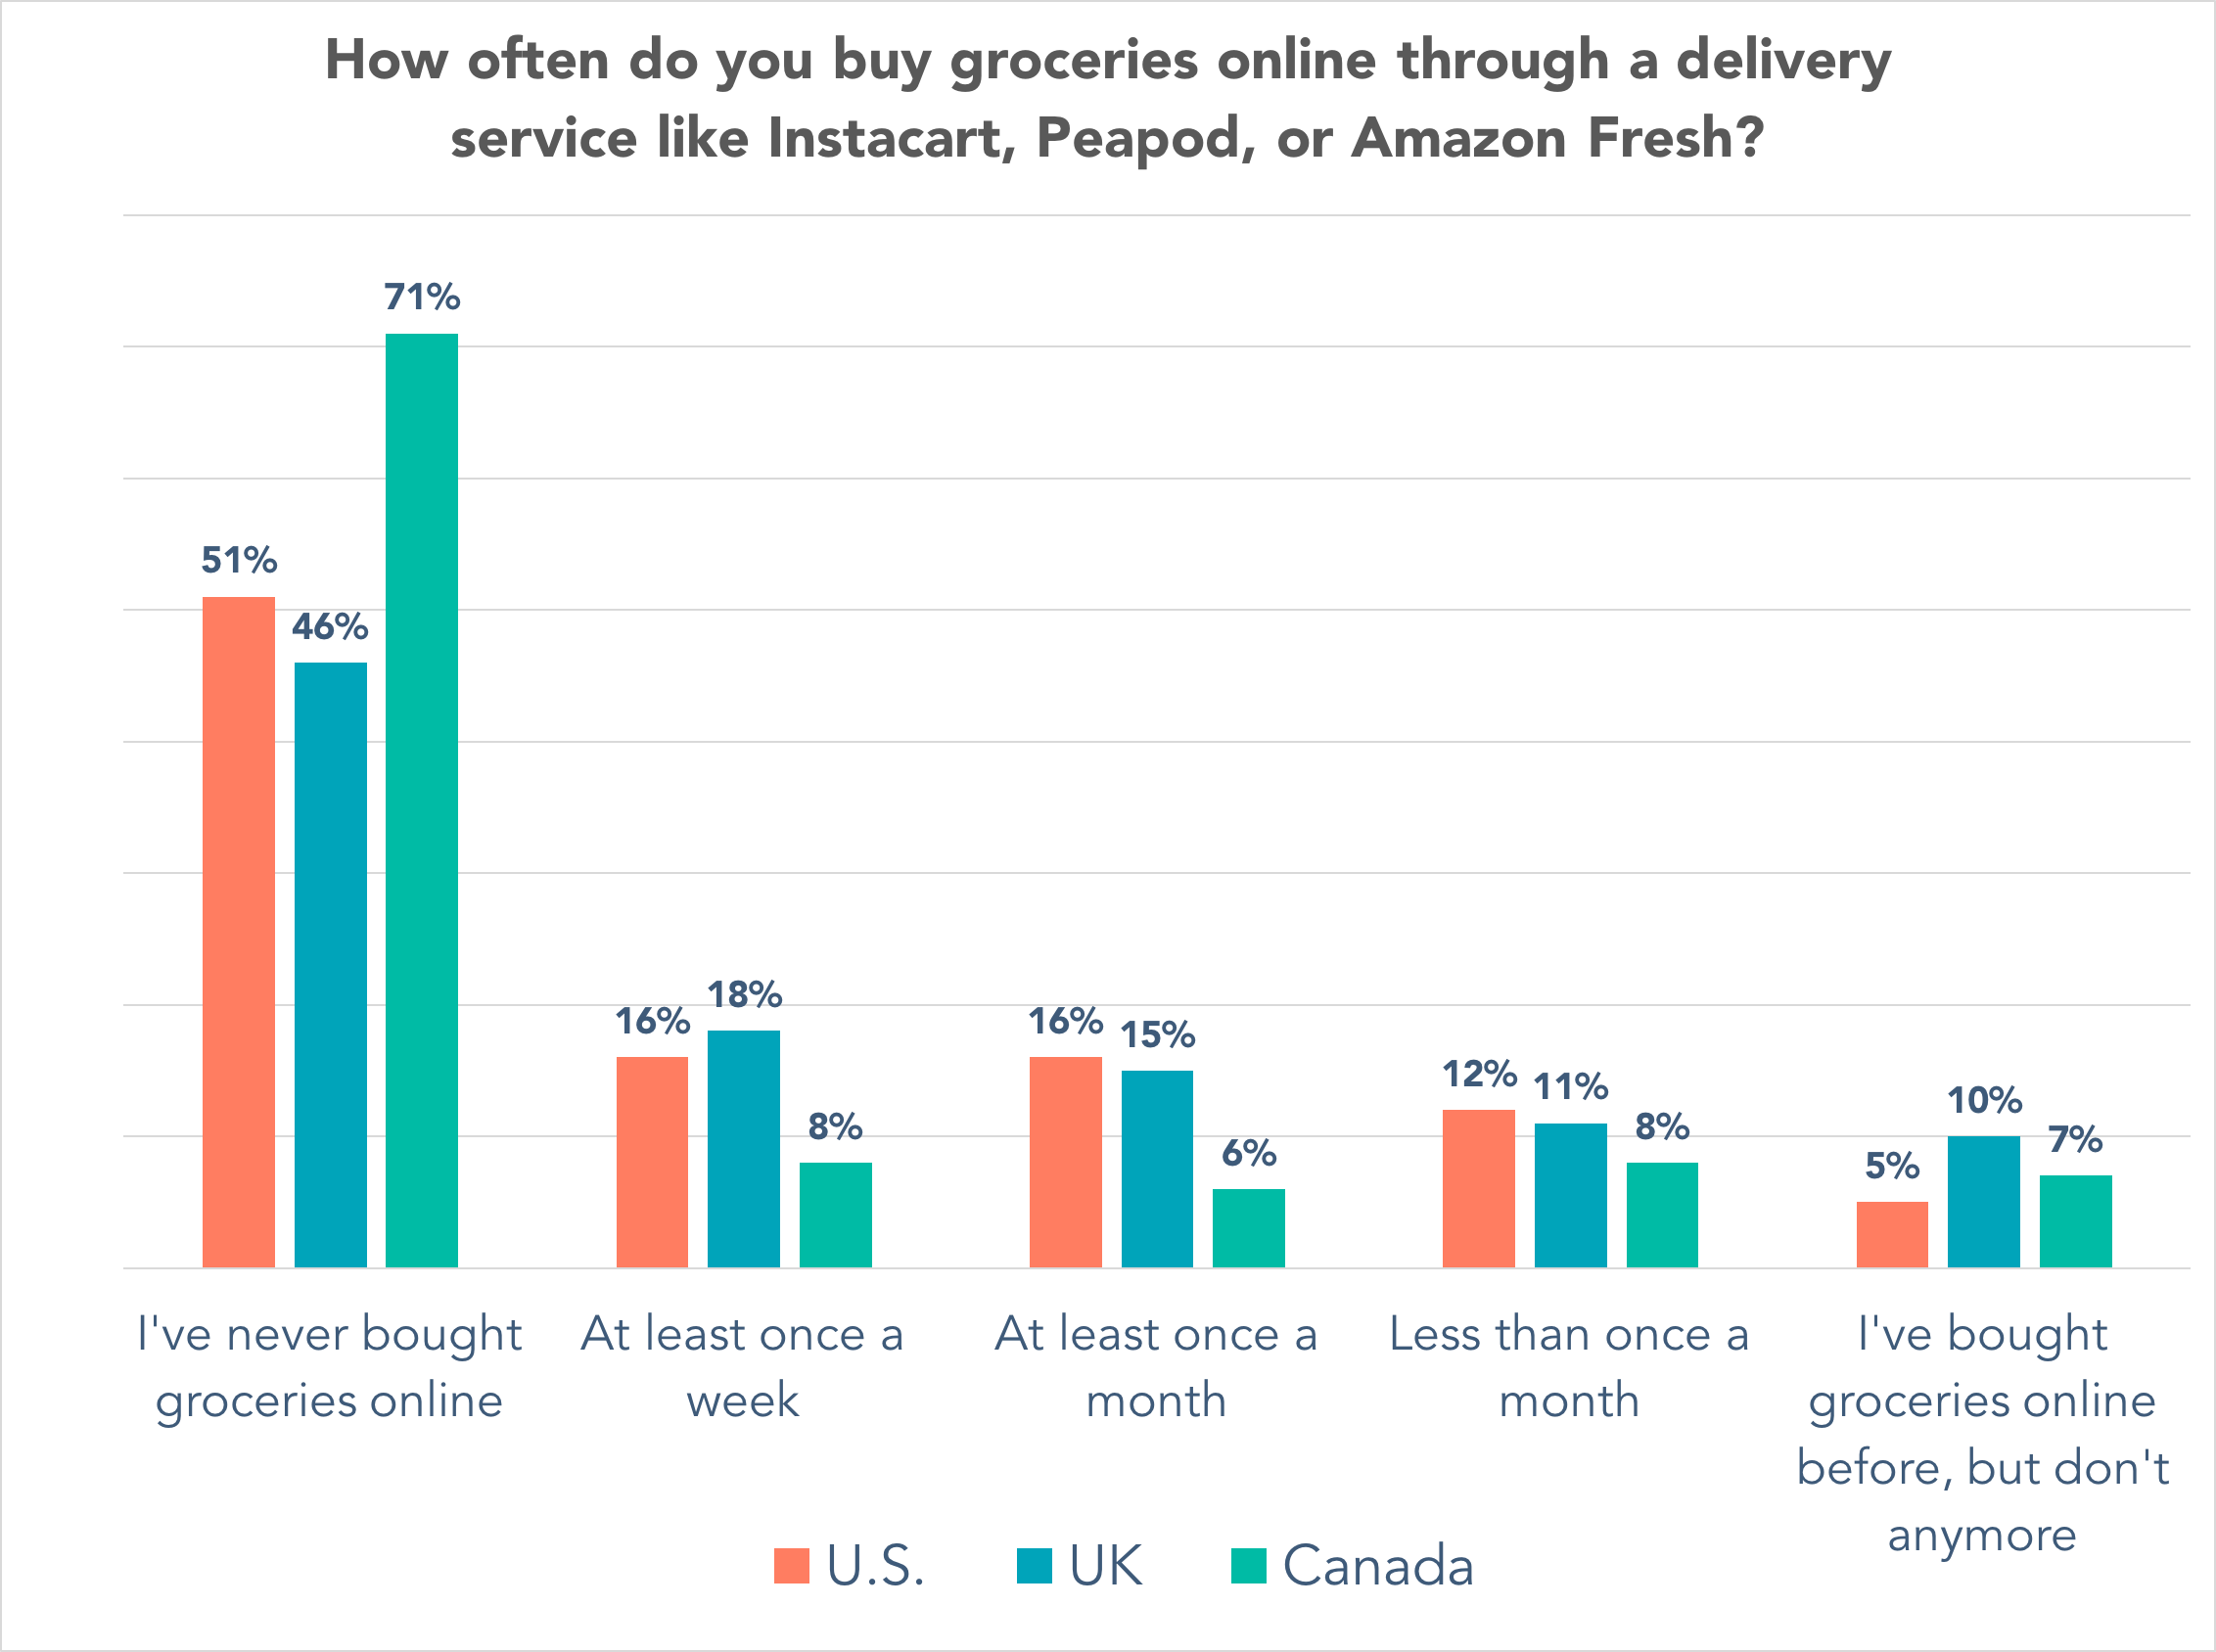 By region -- How often do you buy groceries online through a delivery service like Instacart, Peapod, or Amazon Fresh?